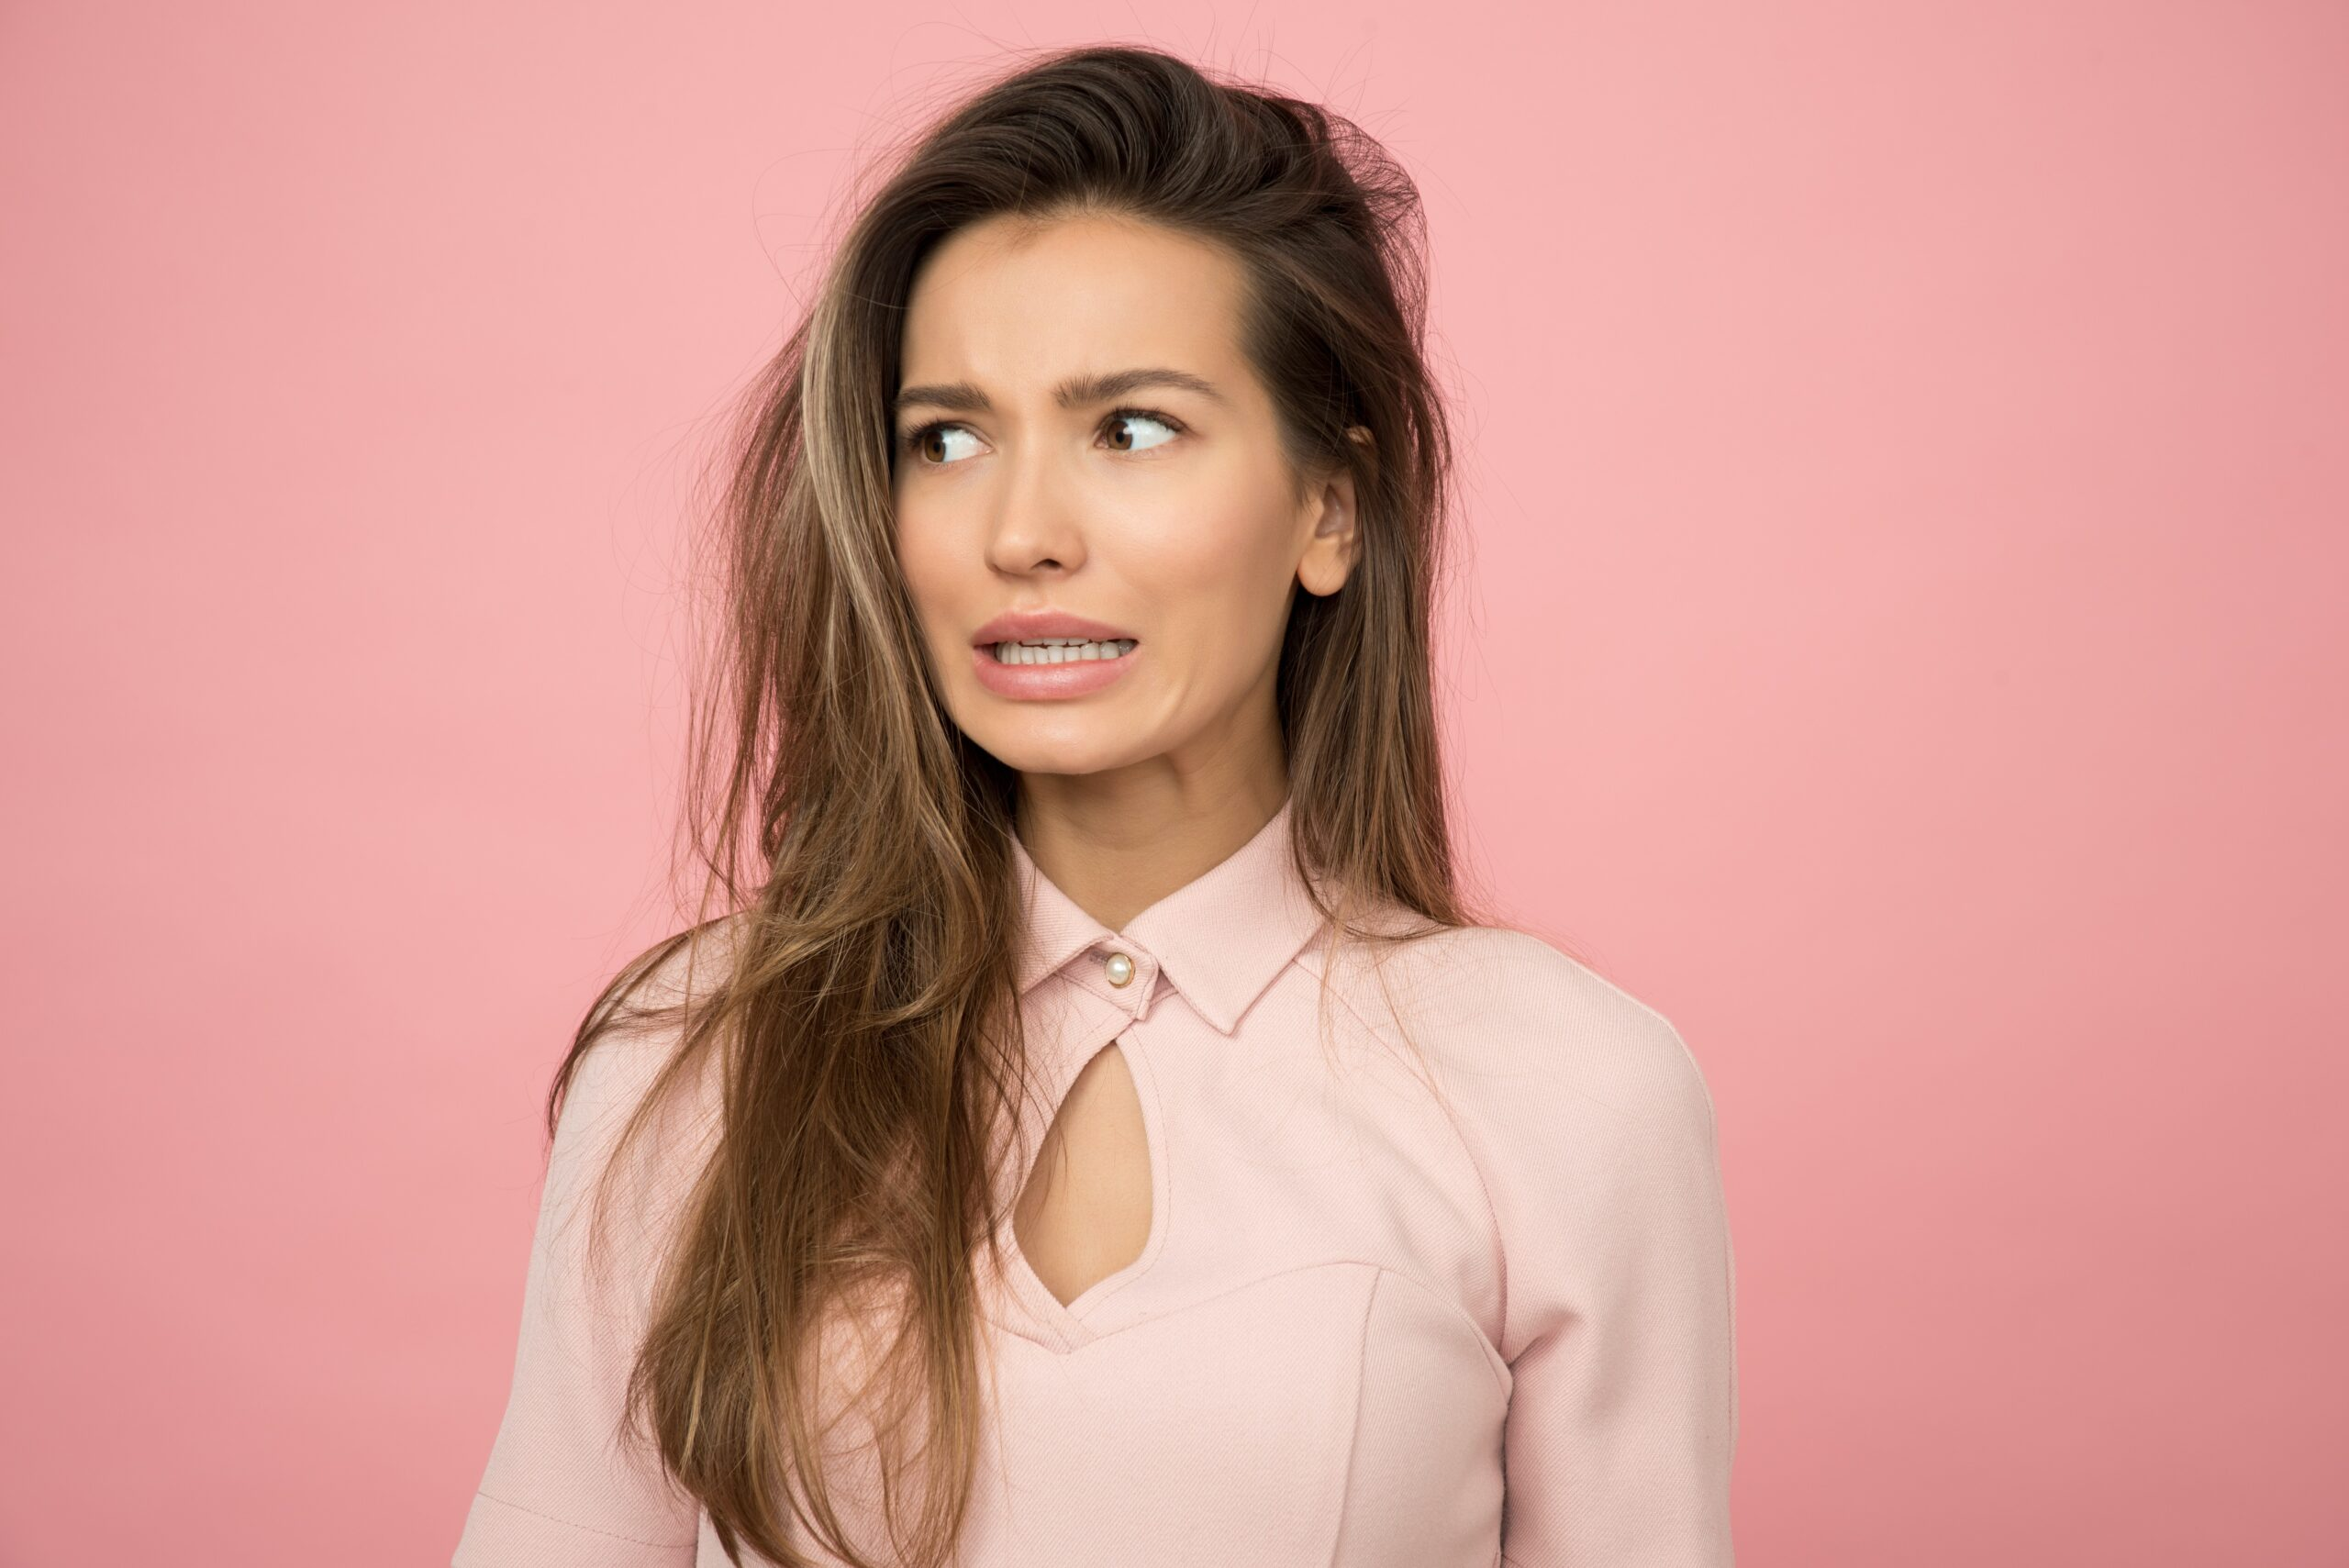 Woman wearing a pink top with an anxious facial expression